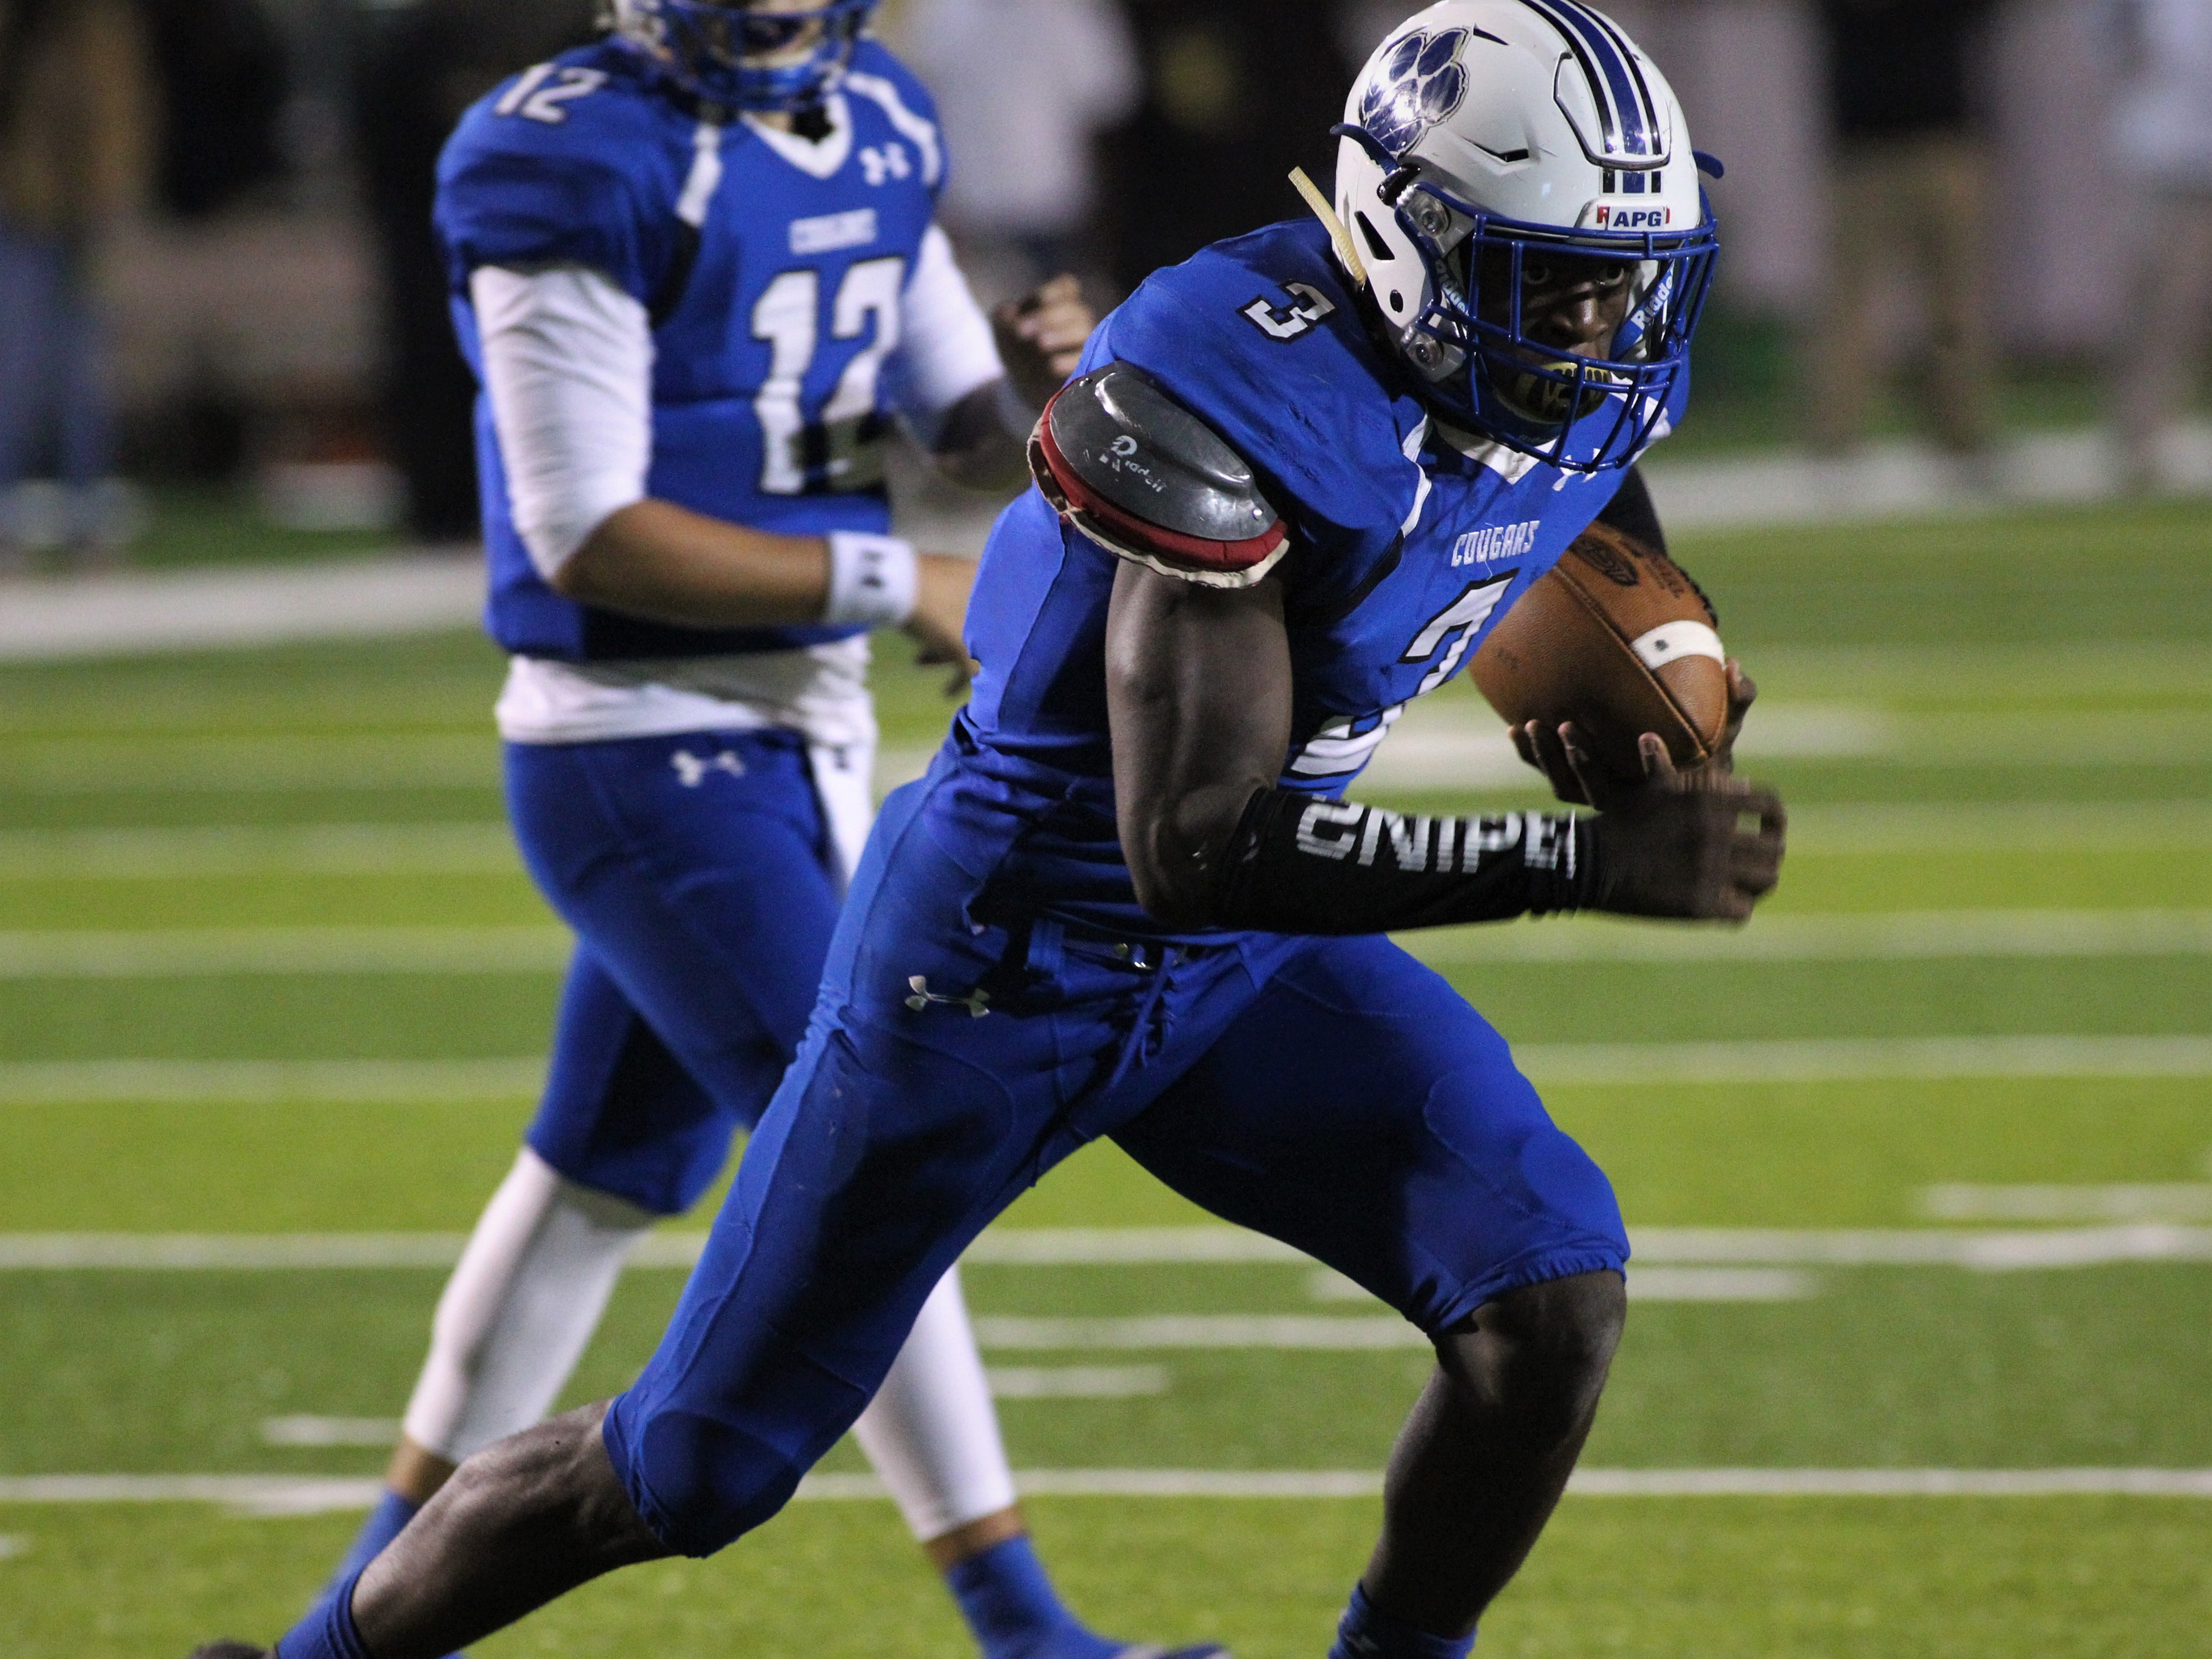 Godby running back Jaquez Yant heads towards the end zone as Godby defeated Lincoln 34-24 at Gene Cox Stadium on Friday, Nov. 2, 2018.